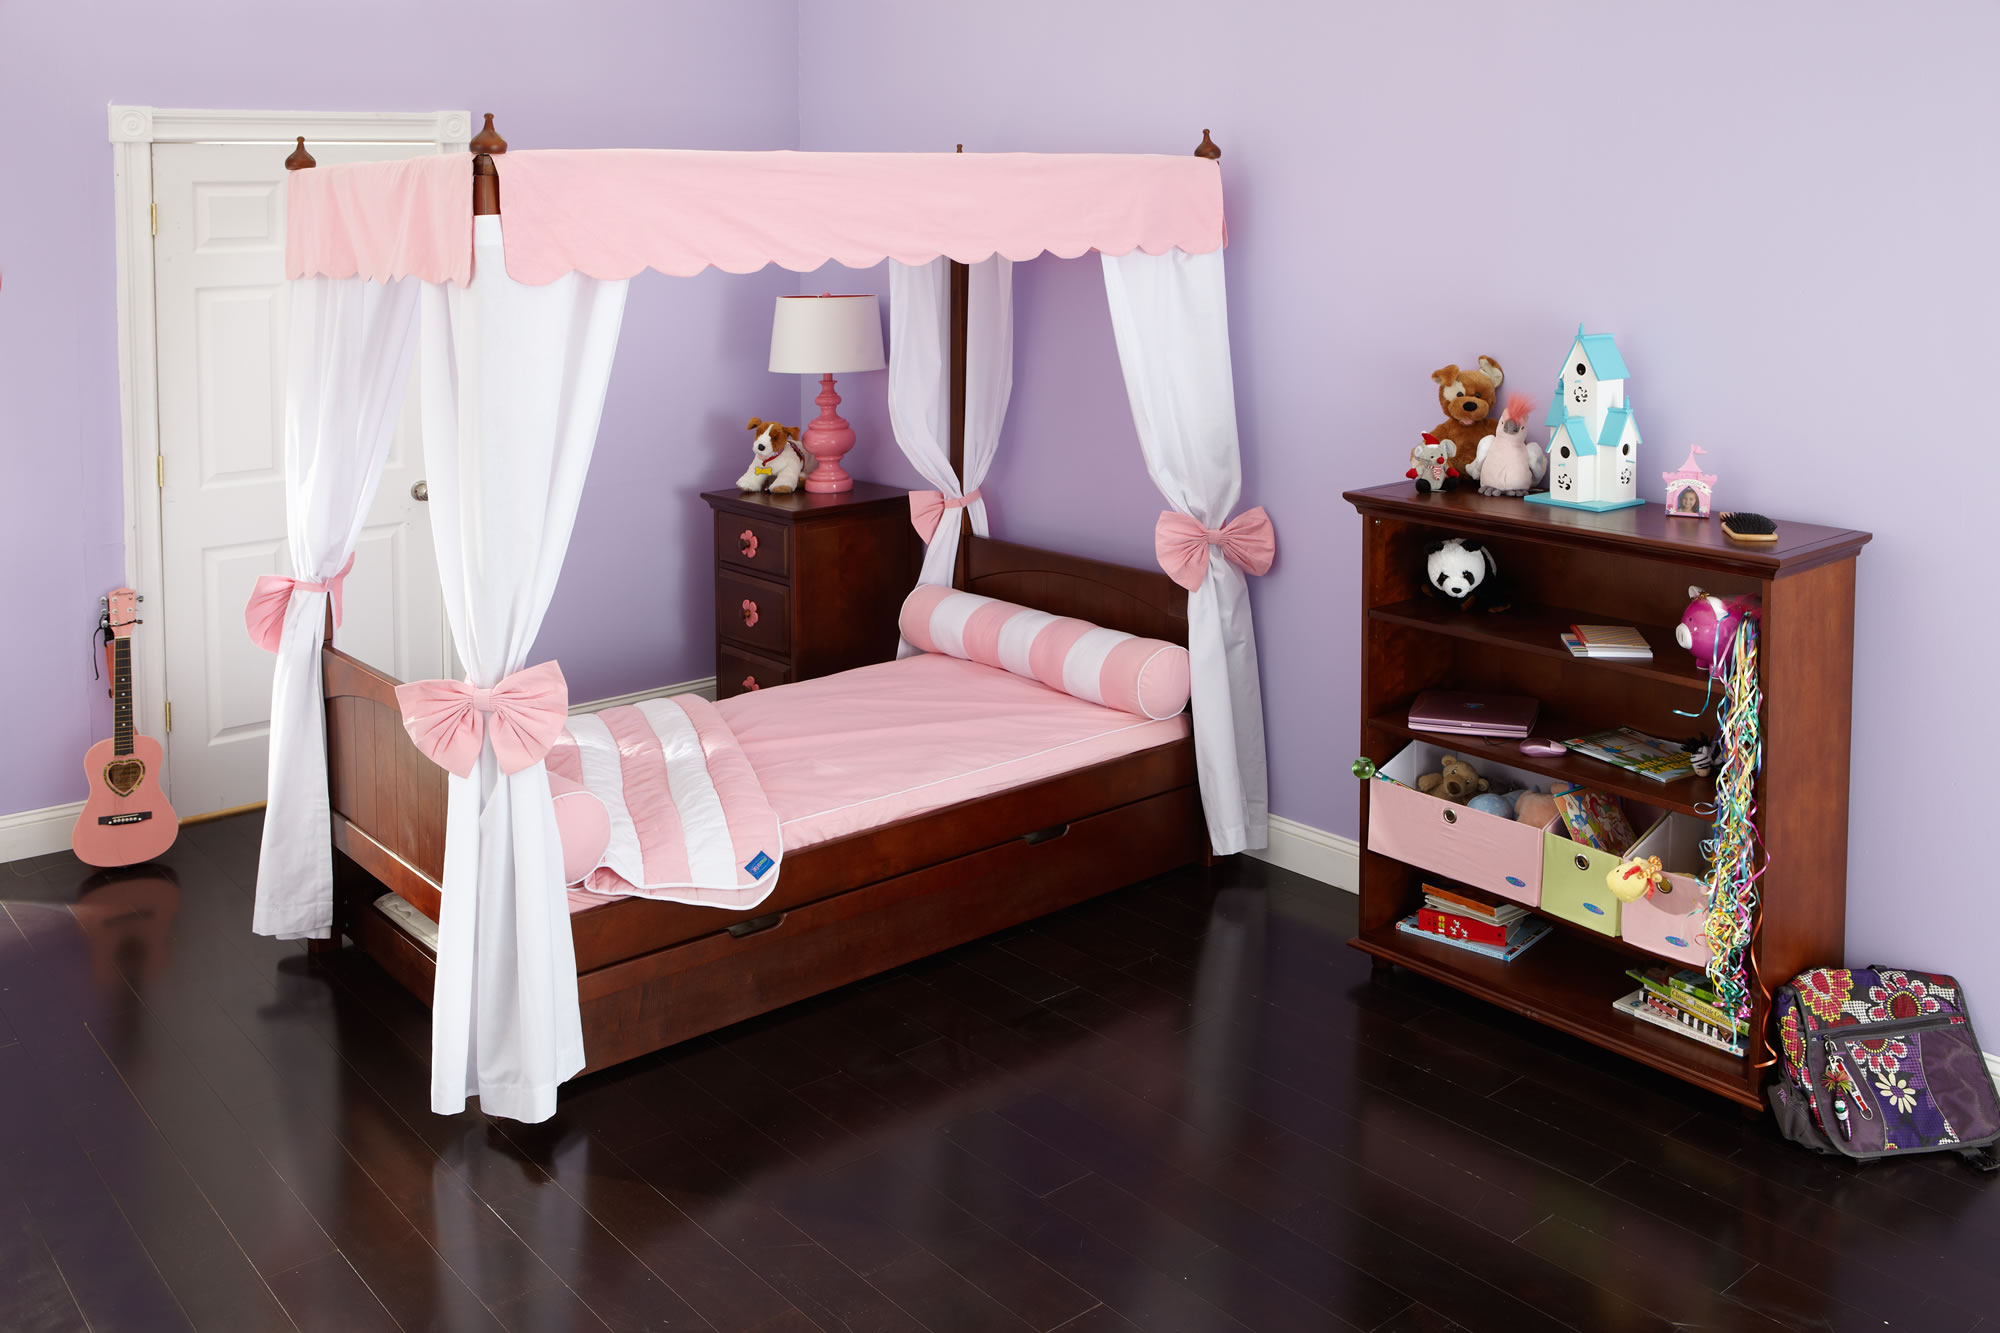 Kids Canopy Beds | Shop at KidsFurnitureMart.com